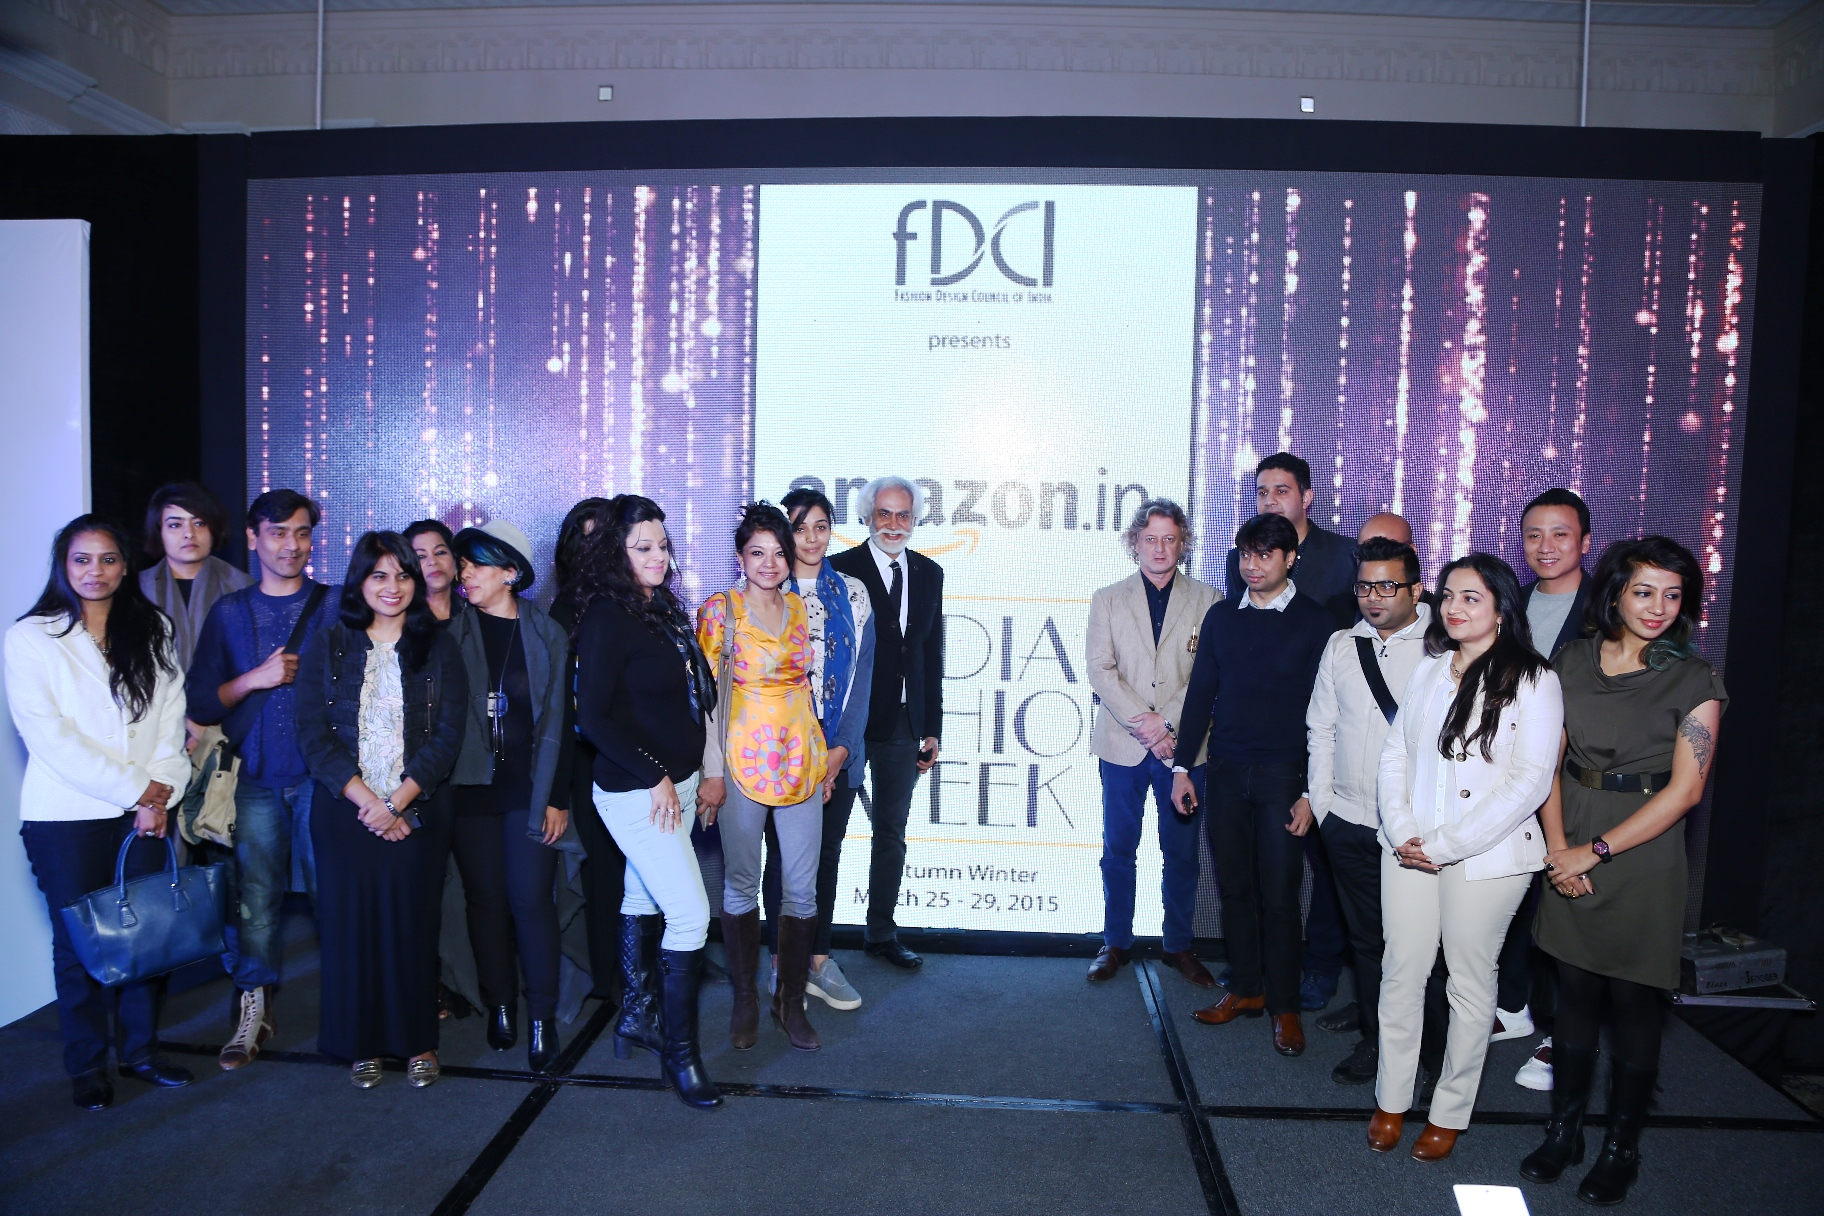 Sunil Sethi, President, FDCI with Vikas Purohit, Head, Fashion, Amazon India and Designers